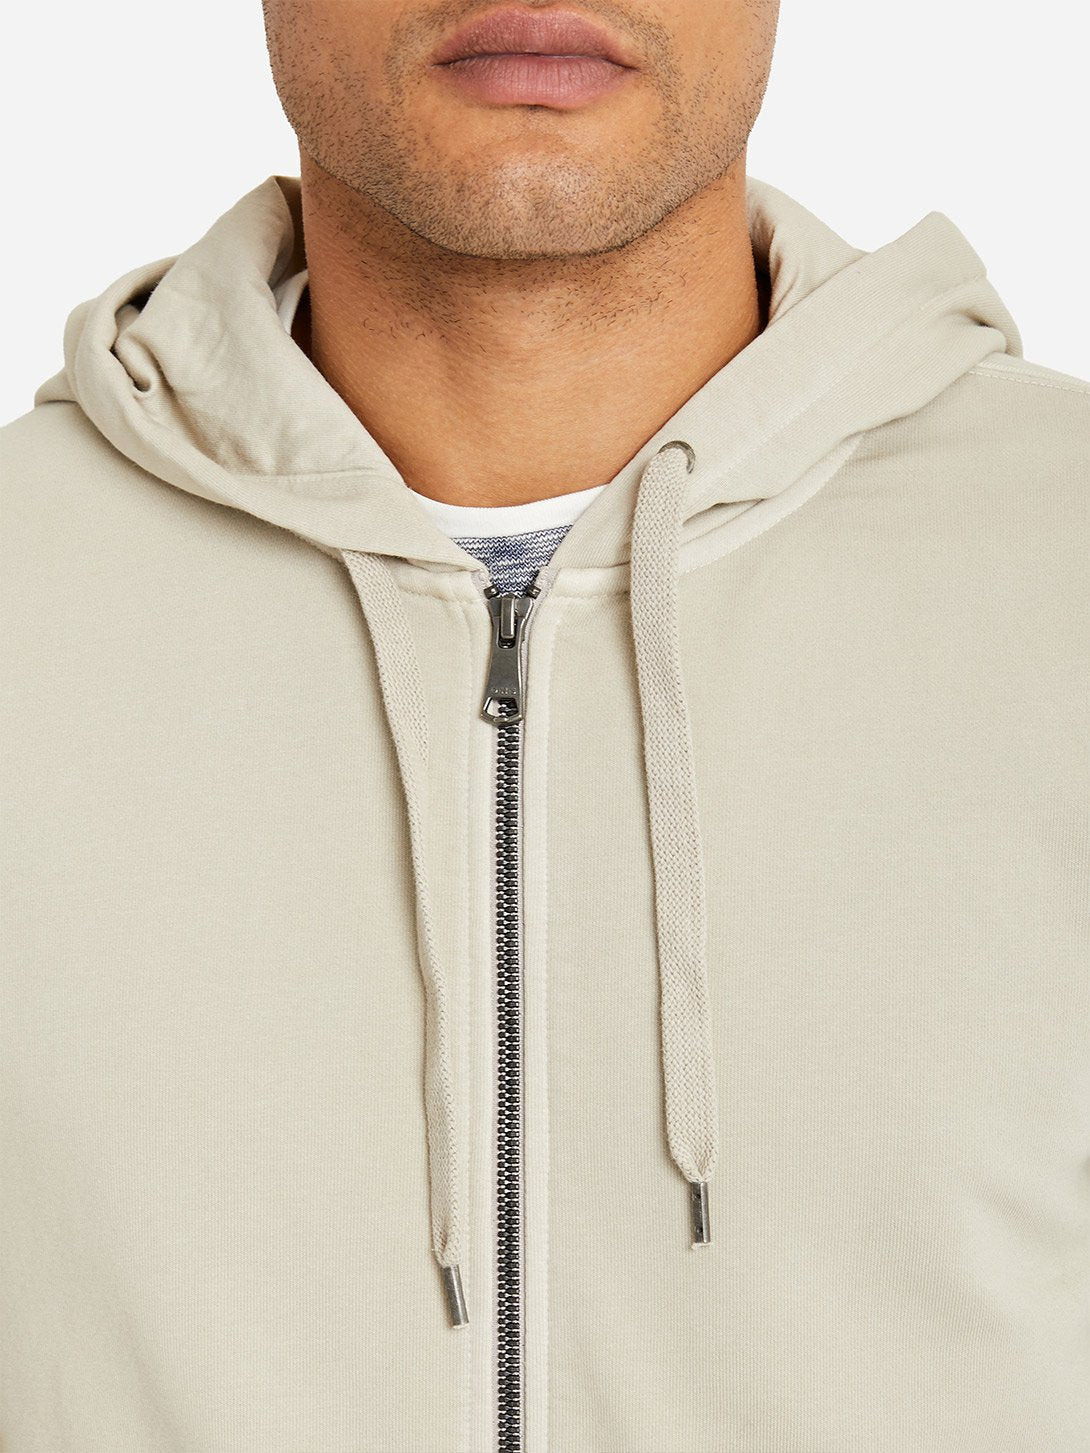 CEMENT GREY zip up hoodie for men by ons clothing